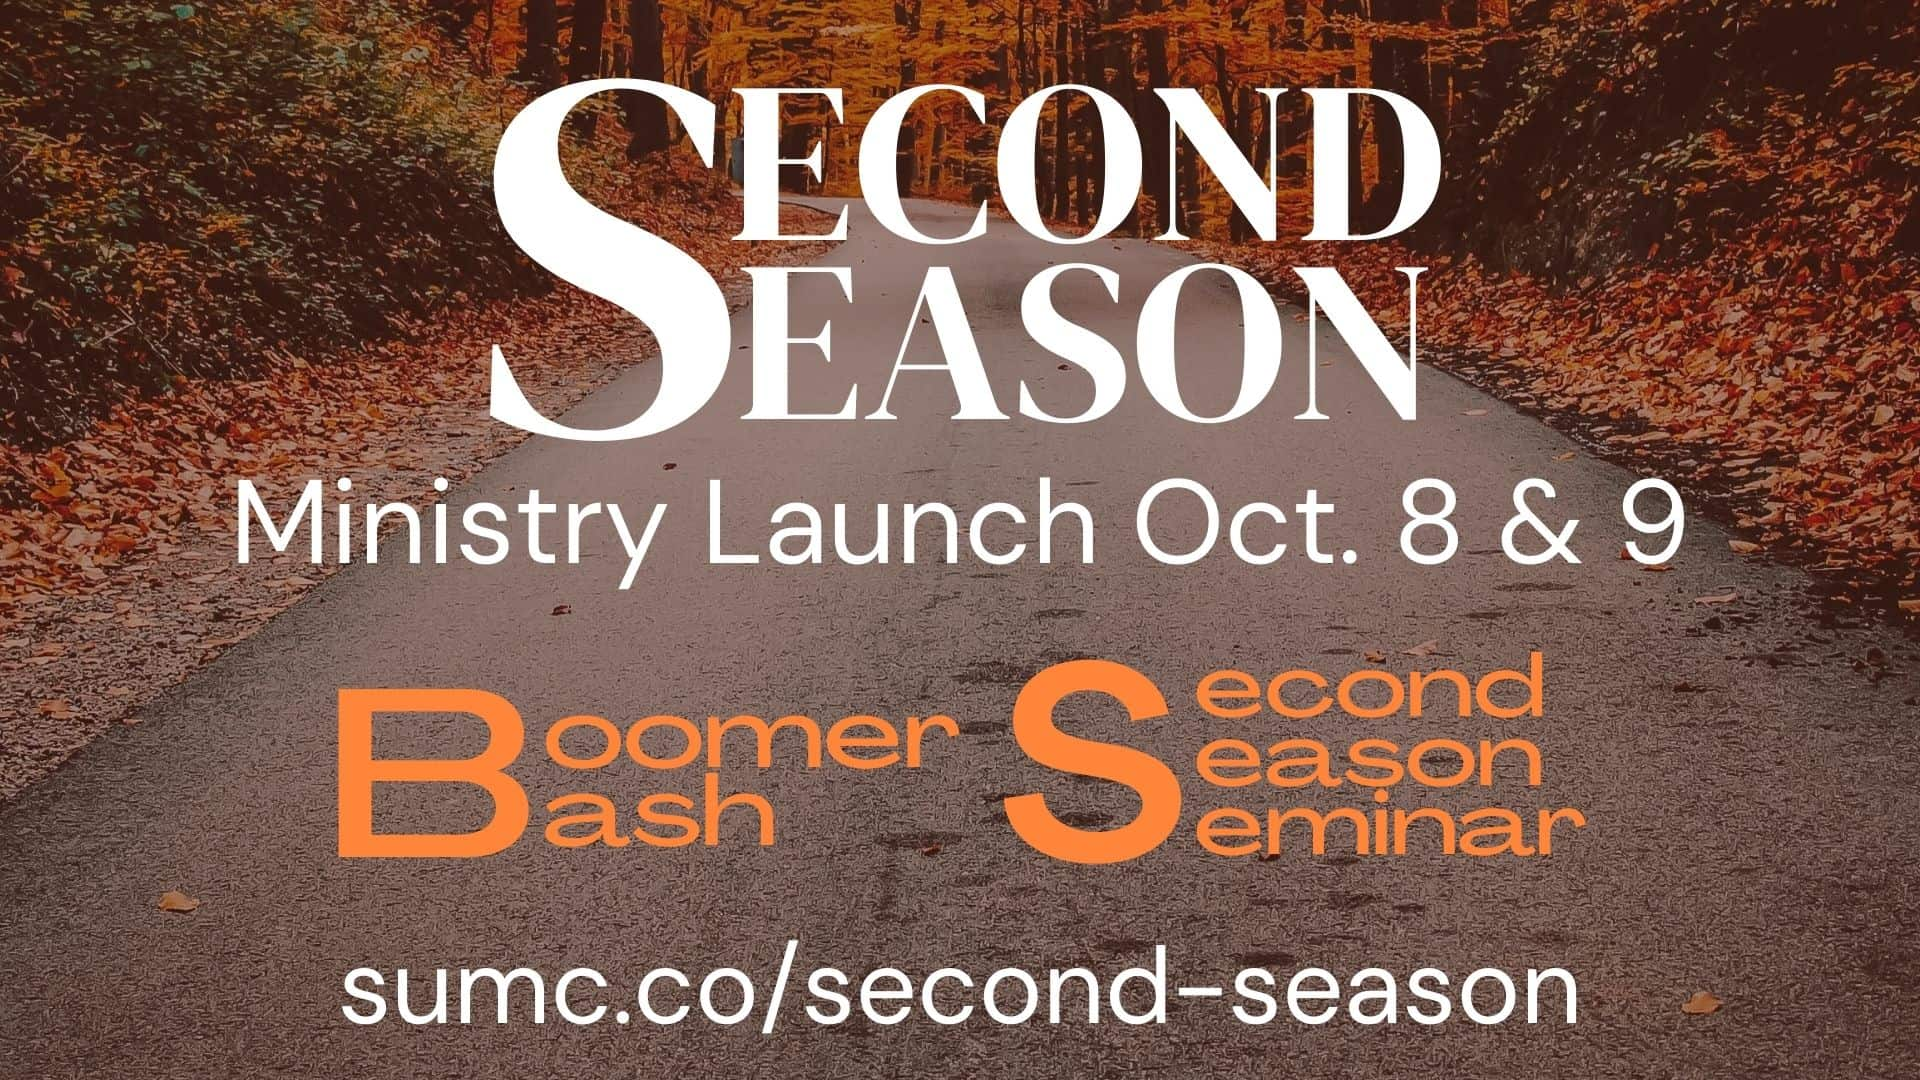 Promotional Graphic for Second Season Kick Off Event